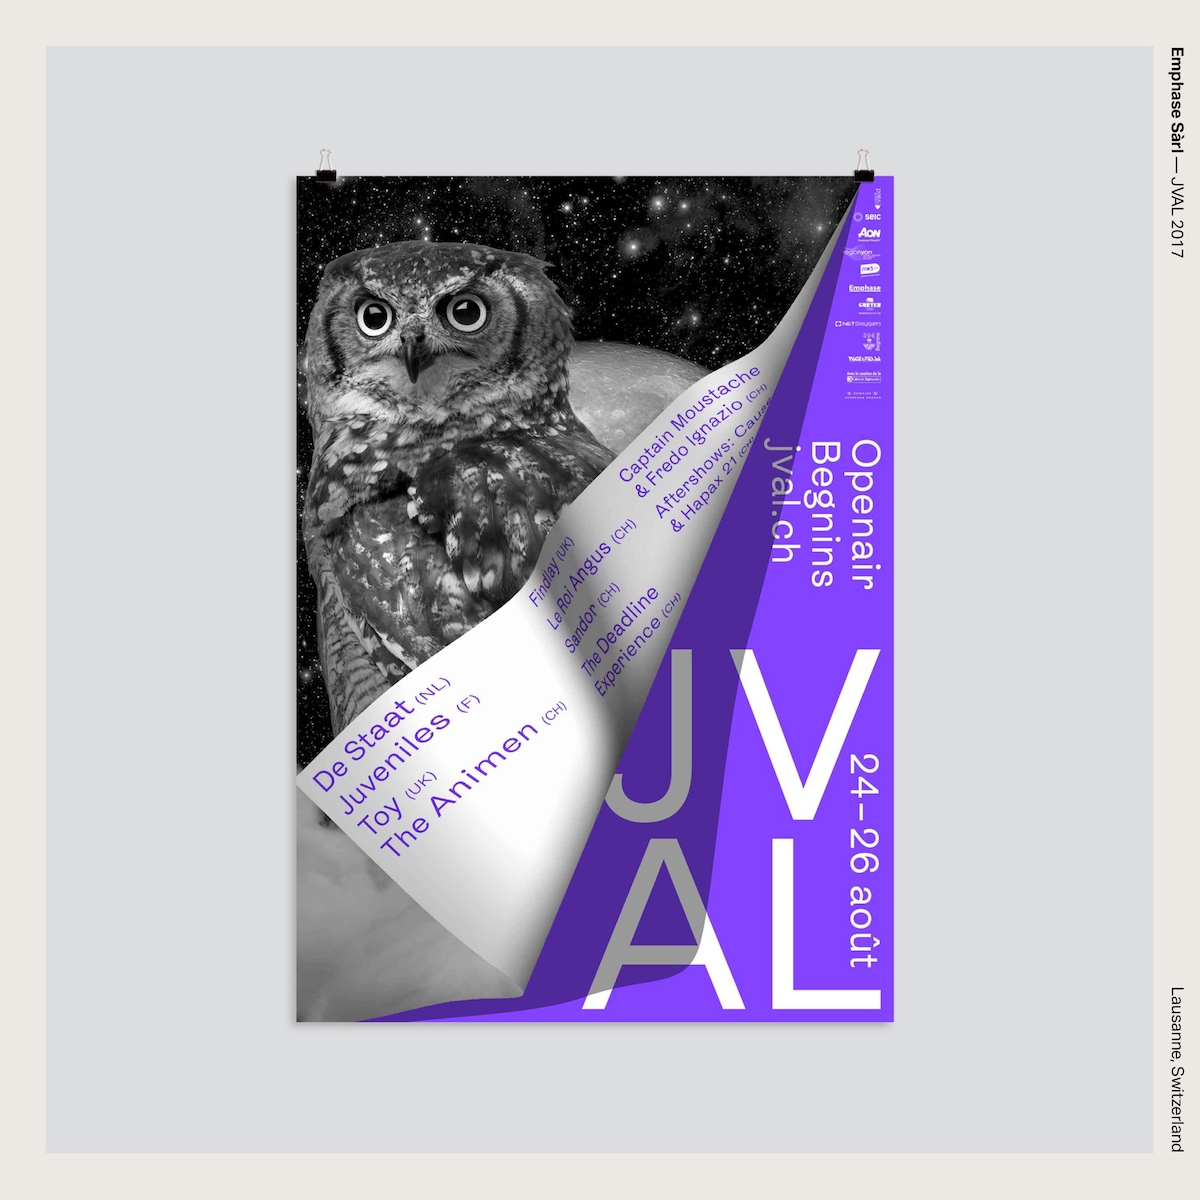 Emphase Sàrl — JVAL 2017